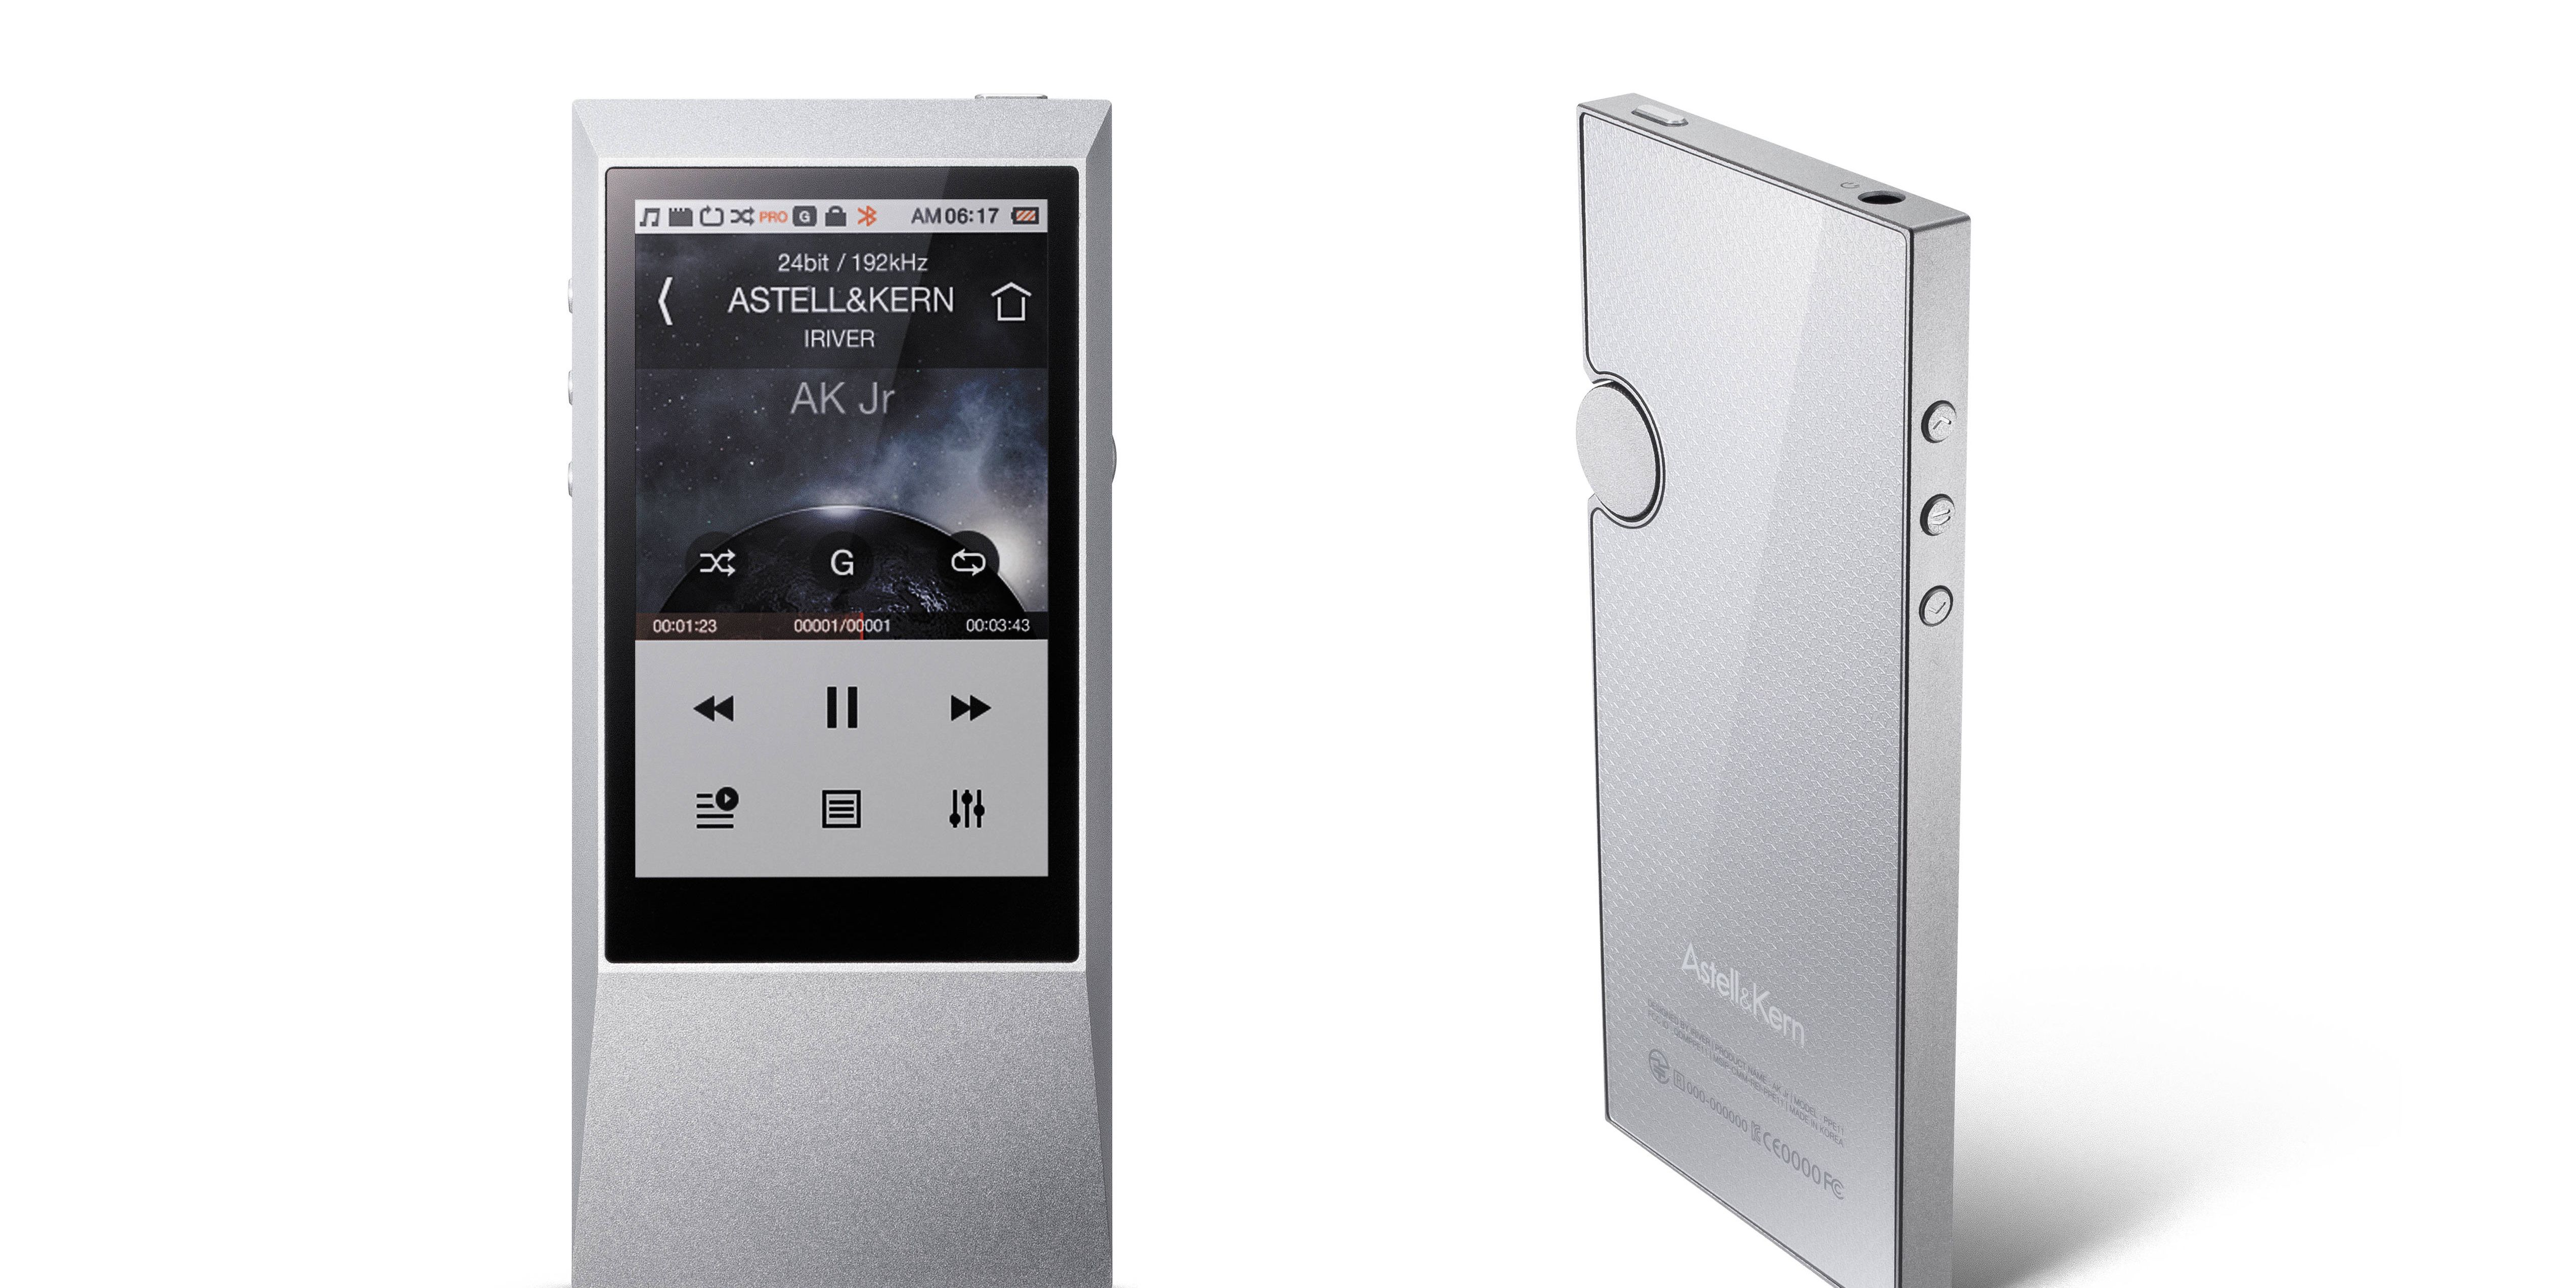 The Best MP3 Players for Digital Music Lovers